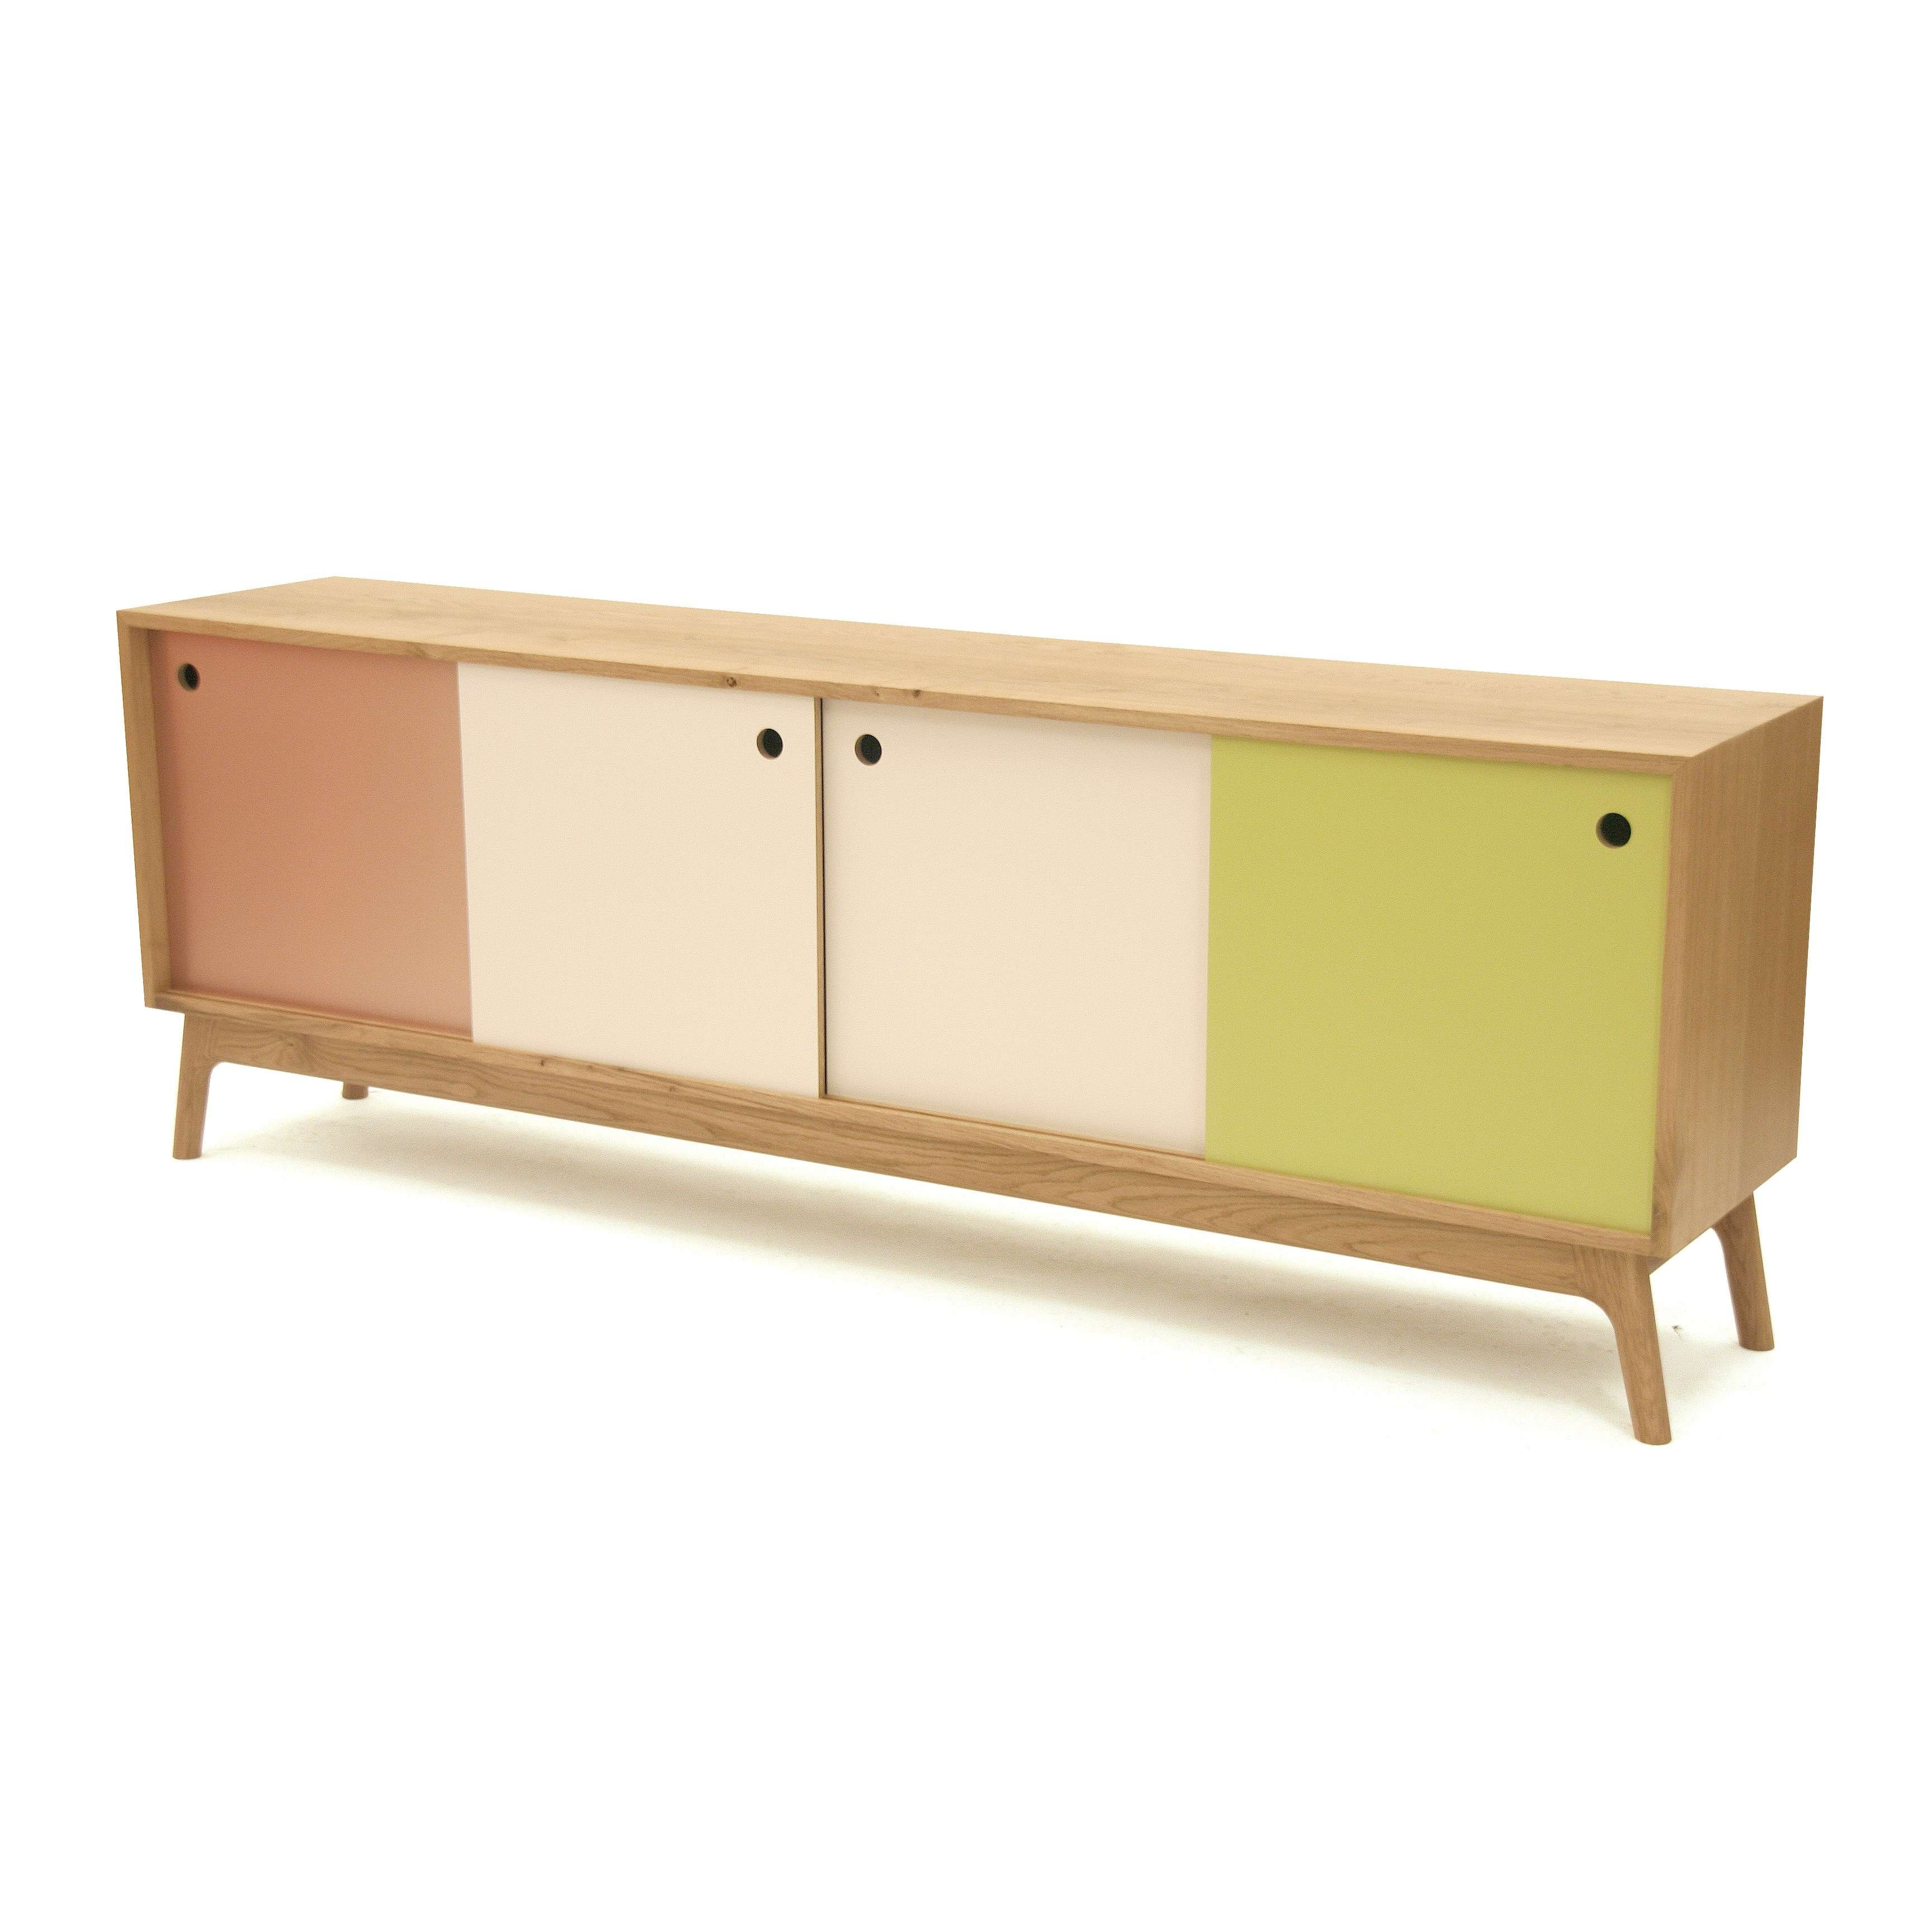 Design 20:20 Sideboard Triple For Bespoke Sideboards (View 7 of 20)